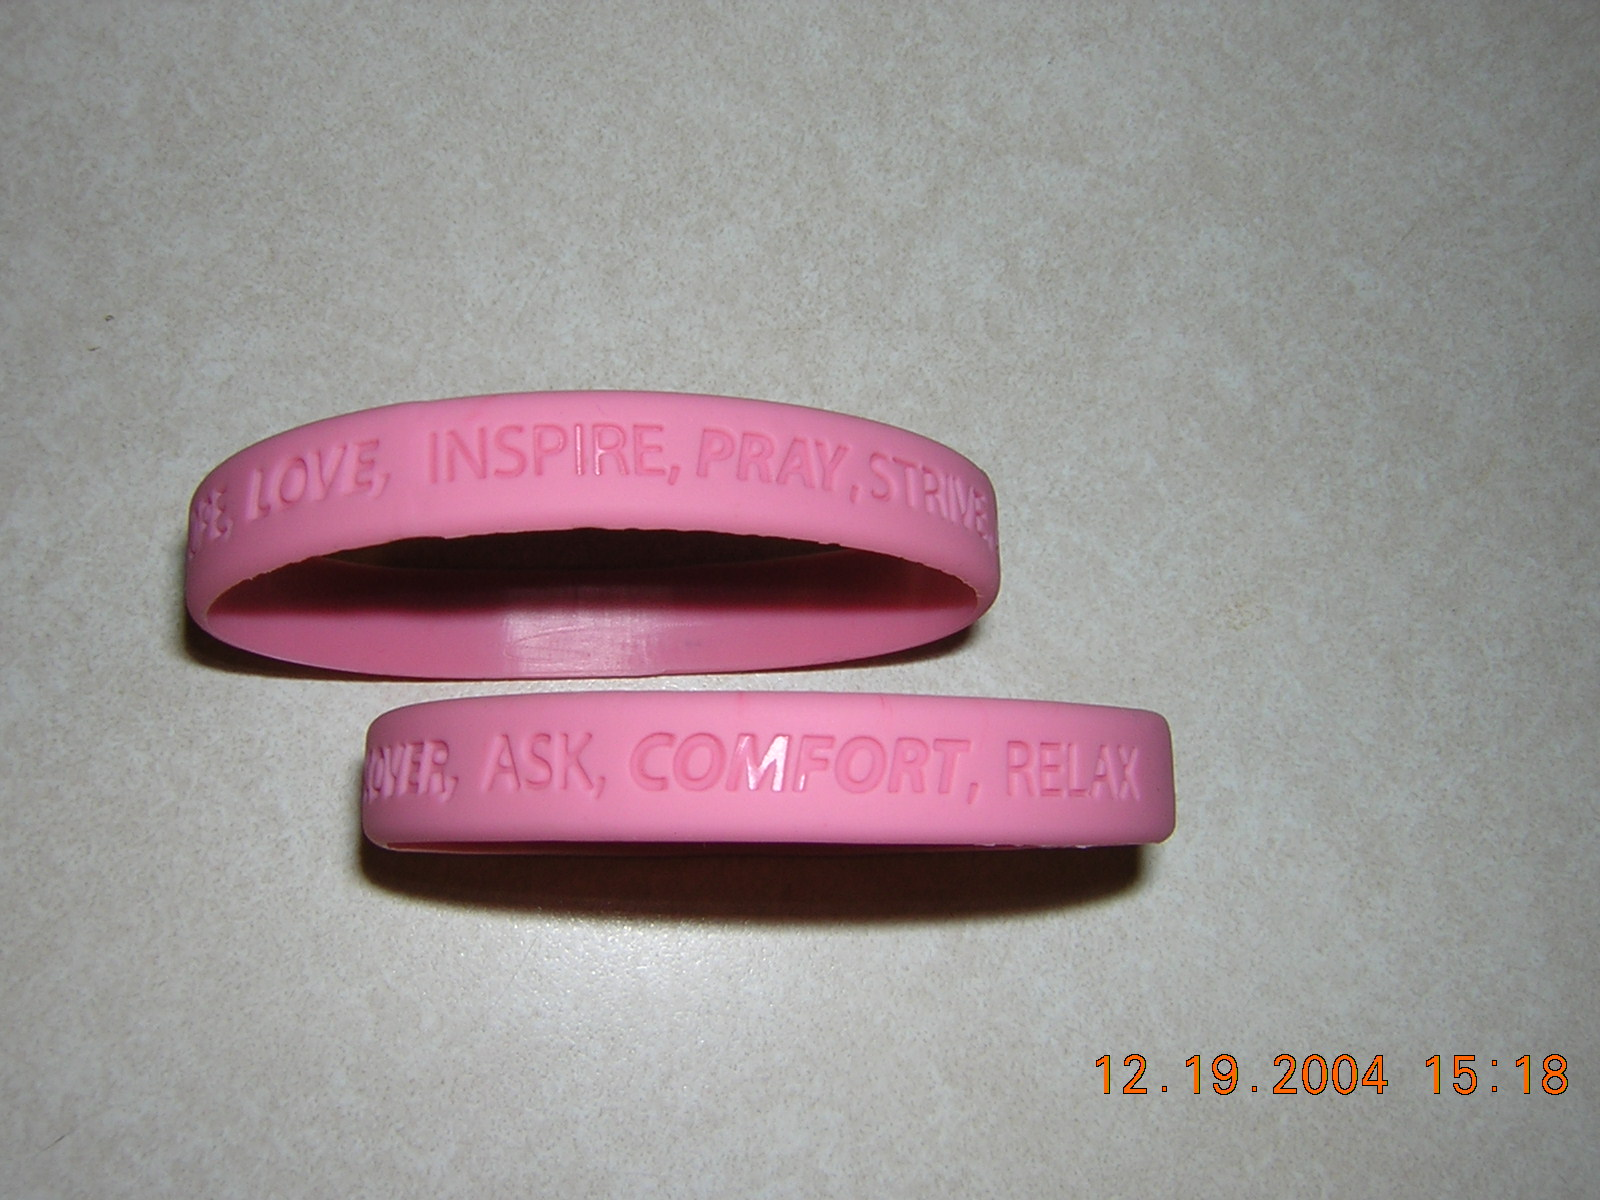 revisedpop off bracelet gz to sales experts click support breast flyer cancer enlarge roseville sutter features kick